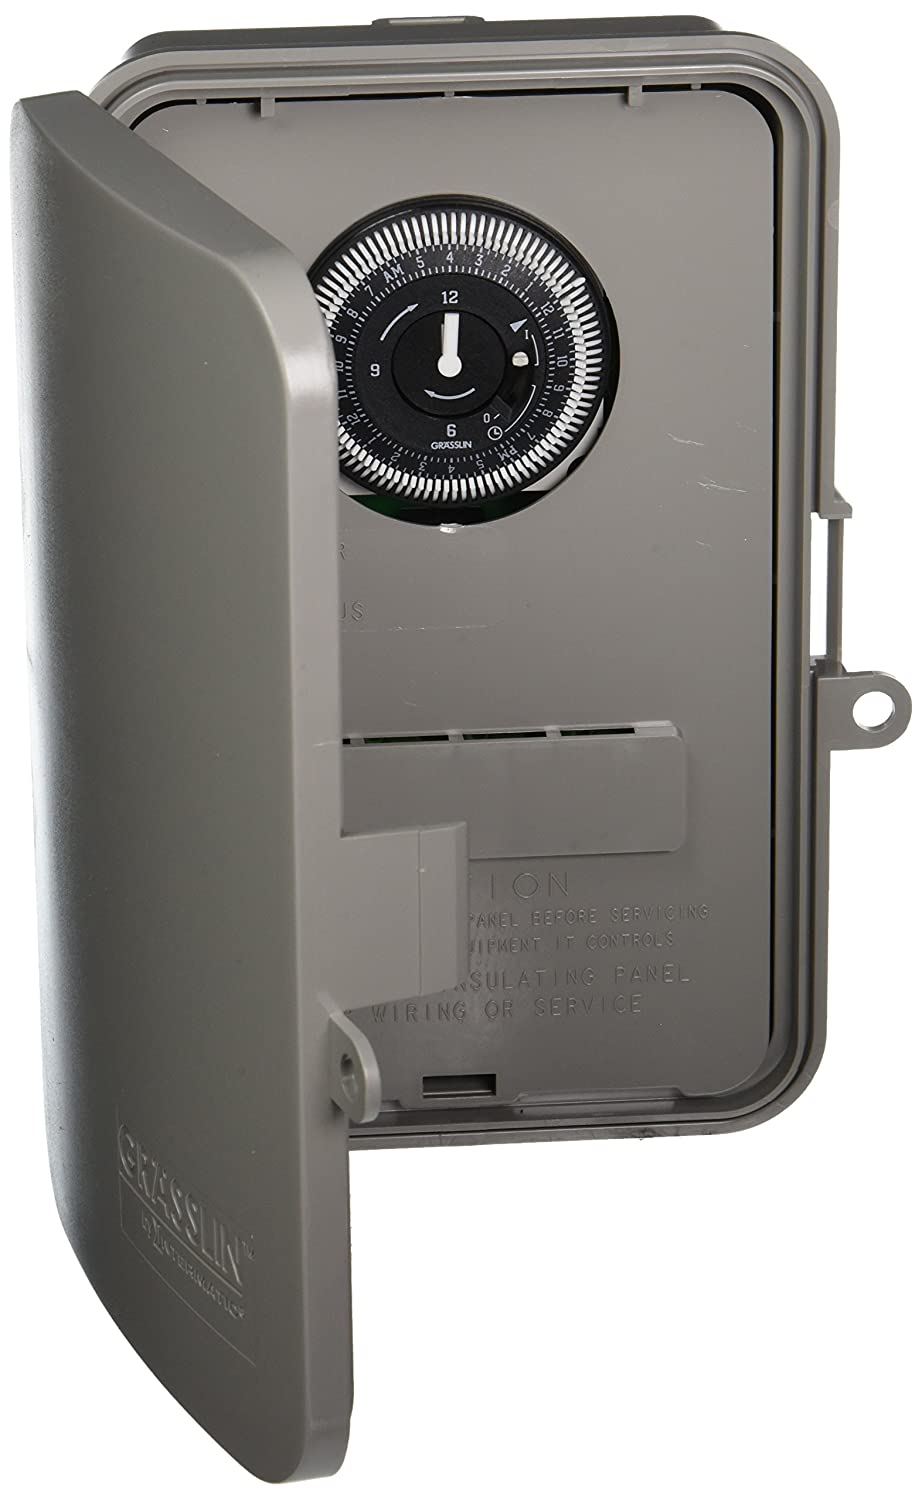 Grasslin by Intermatic GM40AV 24-Hour Electromechanical, 40A, SPDT/DPDT, Auto-Voltage, NEMA 3R Outdoor Plastic Enclosure